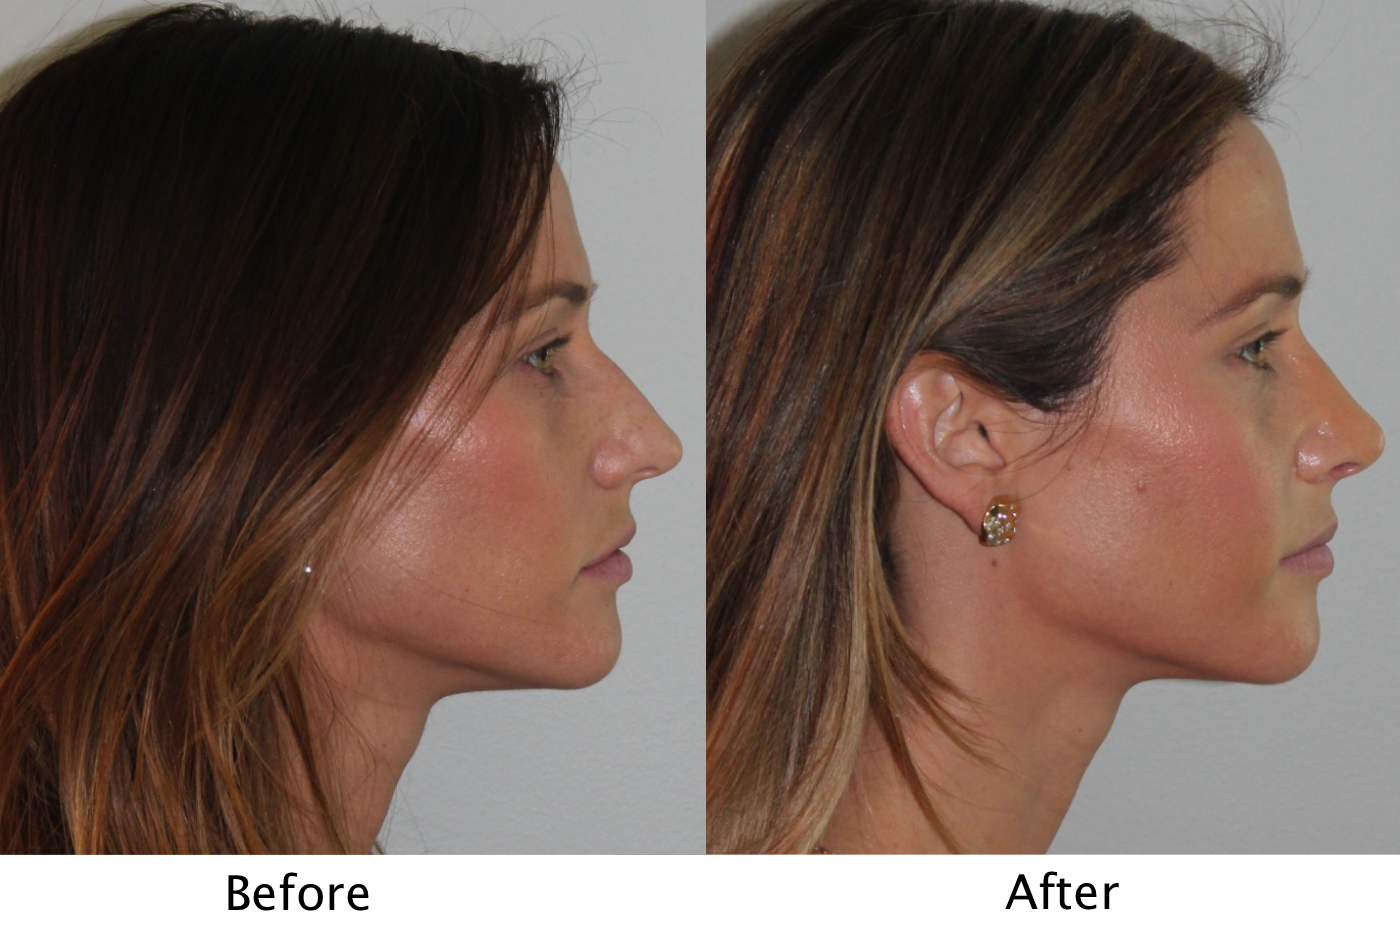 Female Patient Profile View Before And After Sinus Surgery To